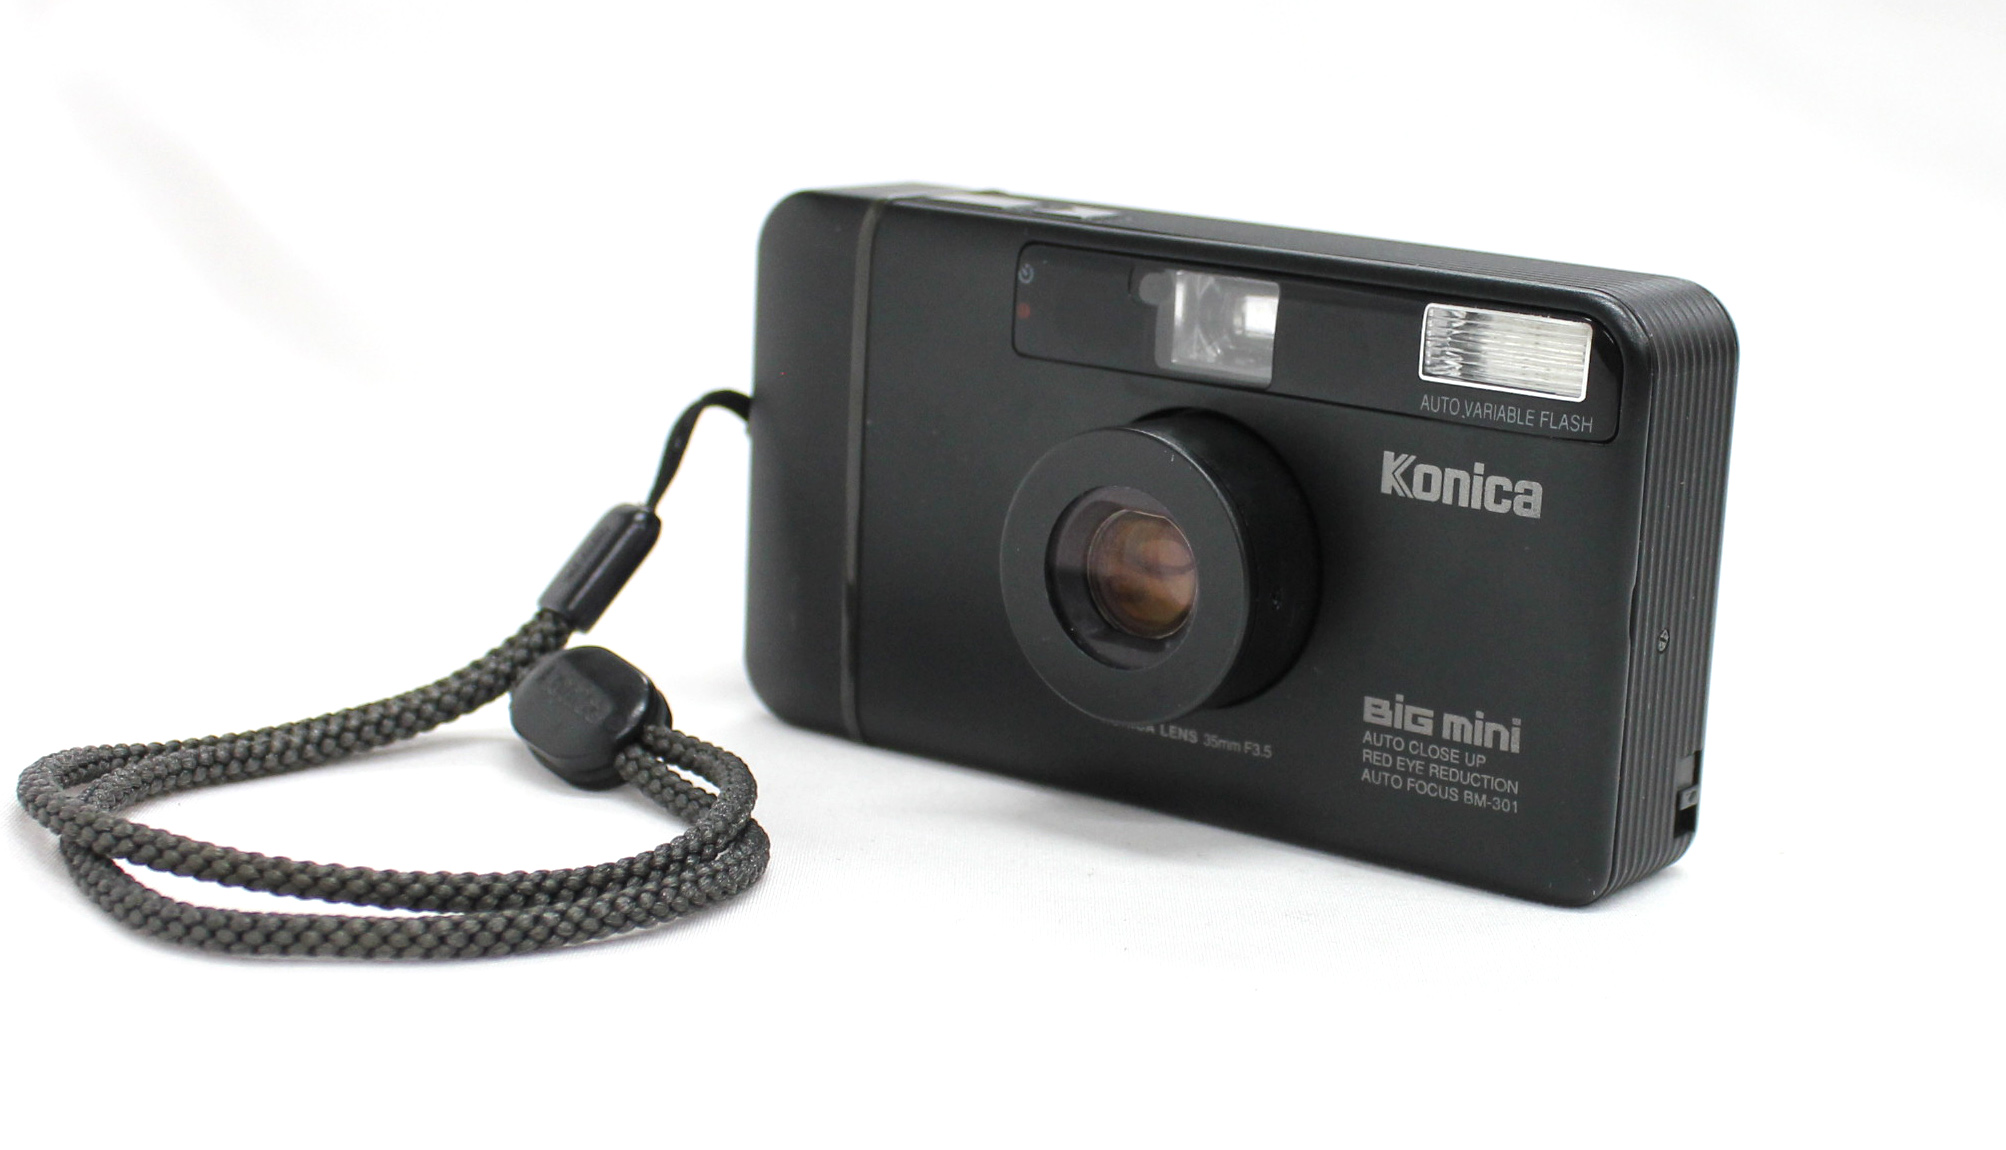 Japan Used Camera Shop | [Excellent+++++] Konica Big Mini BM-301 35mm Point & Shoot Film Camera from Japan